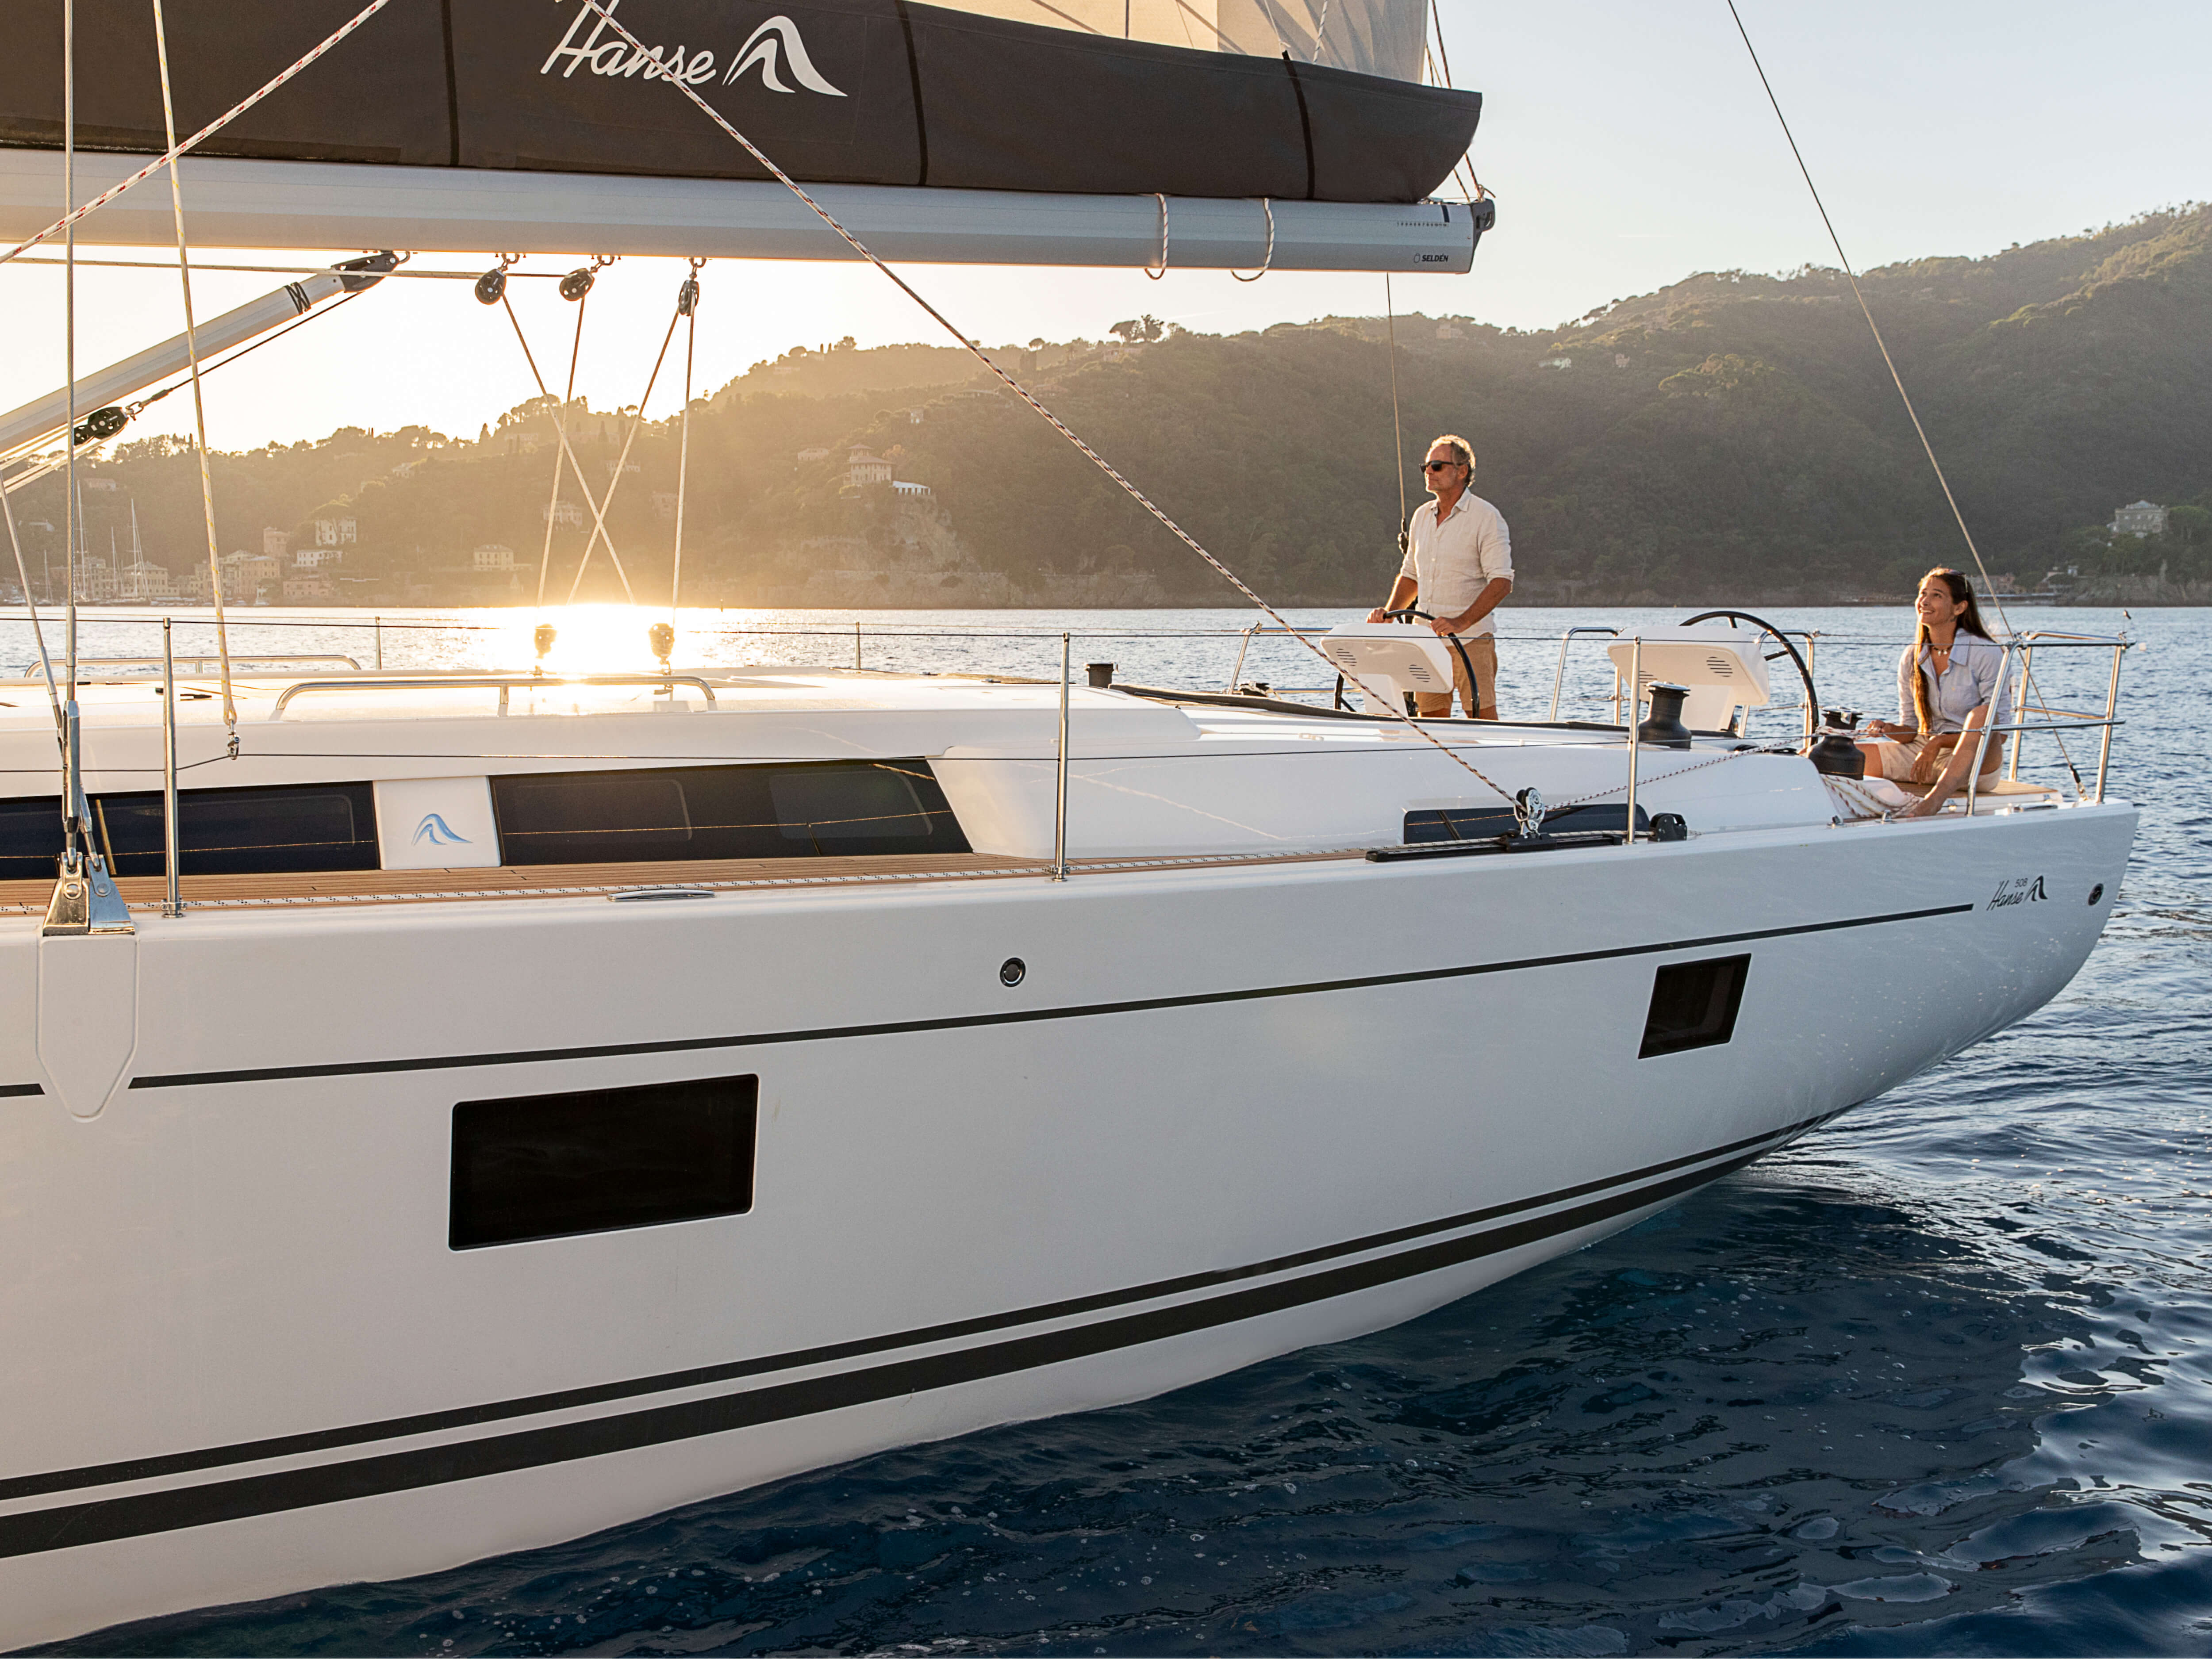 Hanse 508 | HANSE yachts amaze with their modern, functional design. Unique, puristic elegance meets exceptional performance from the pen of judel/vrolijk & co, the world's best and most experienced yacht designers. | Hanse